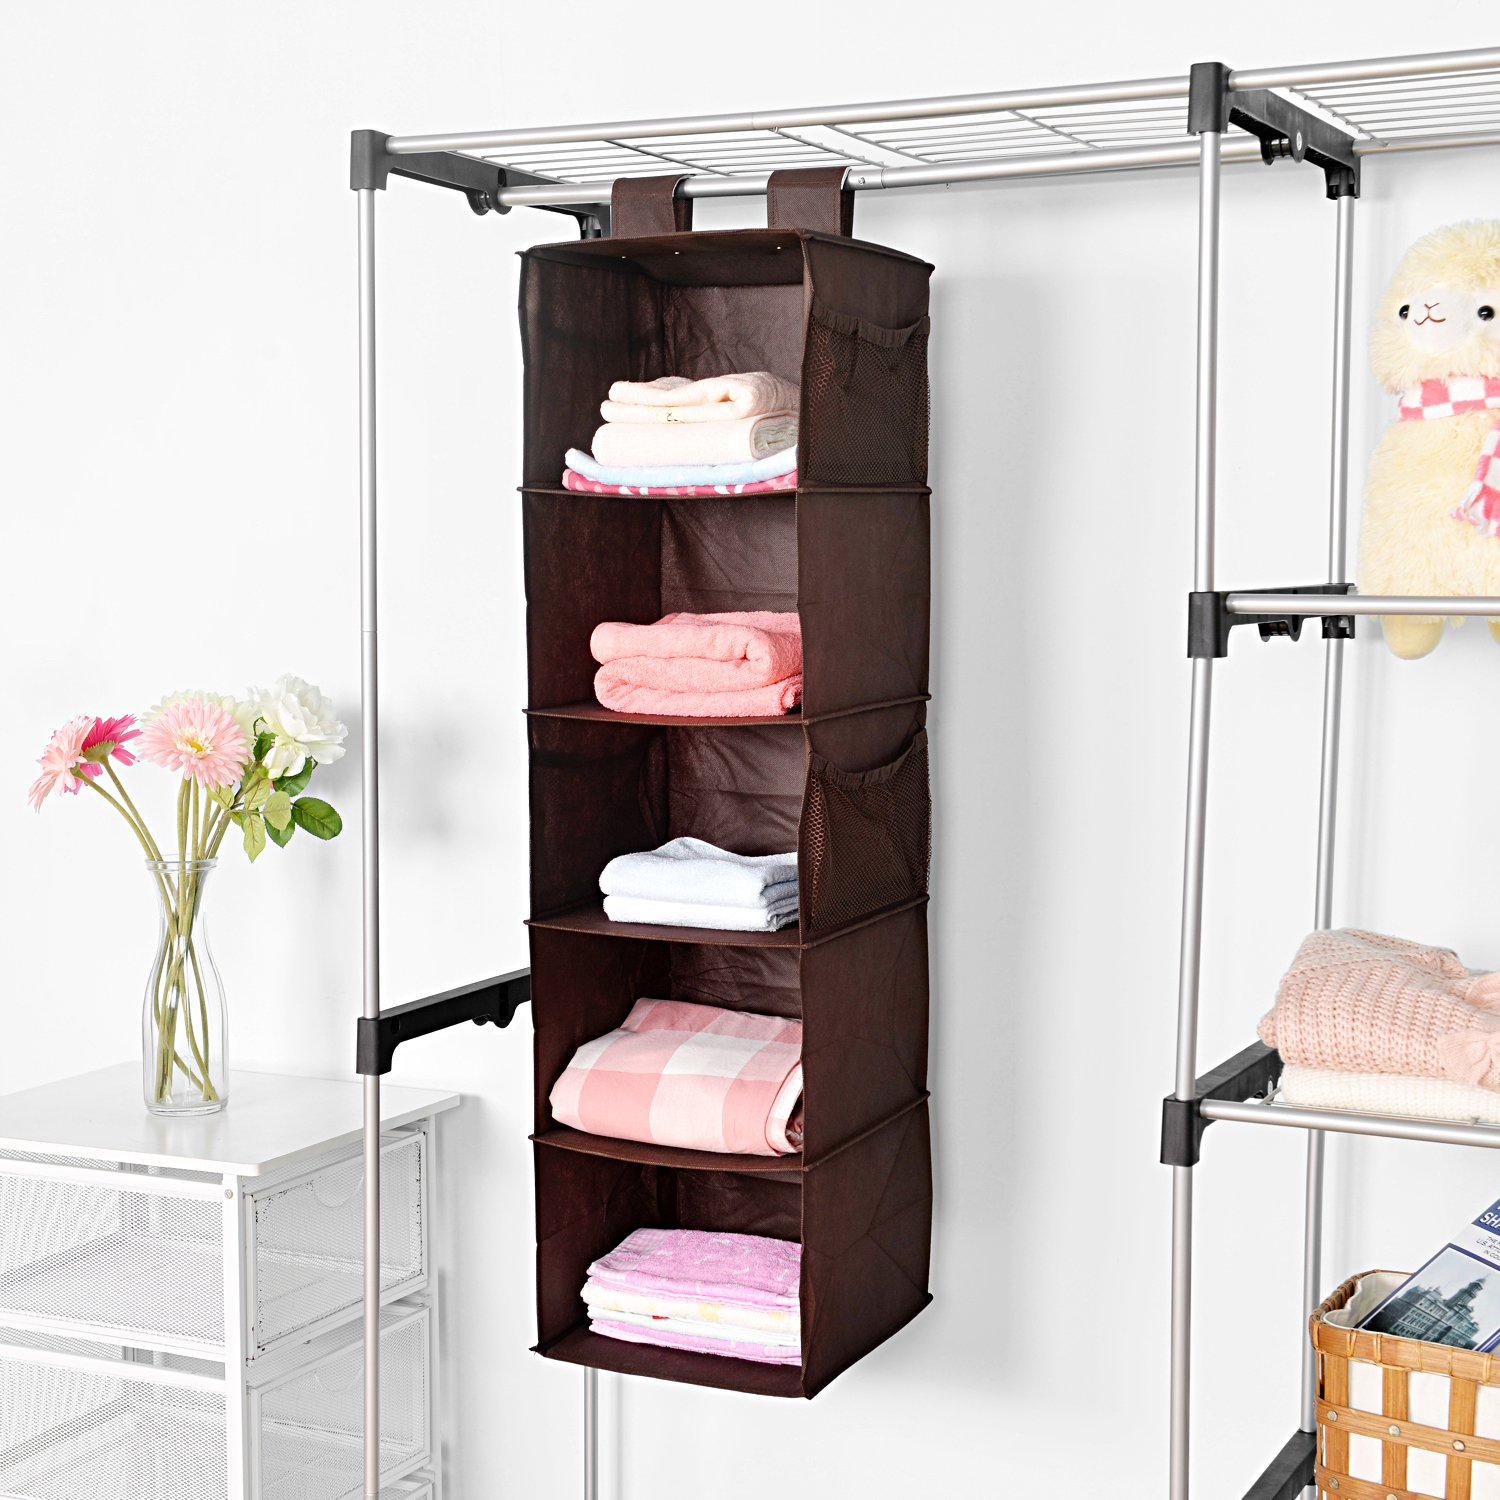 rolling metal portable hom hanger display dryer stand clothes mcr voilamart wardrobe rack rail garment home